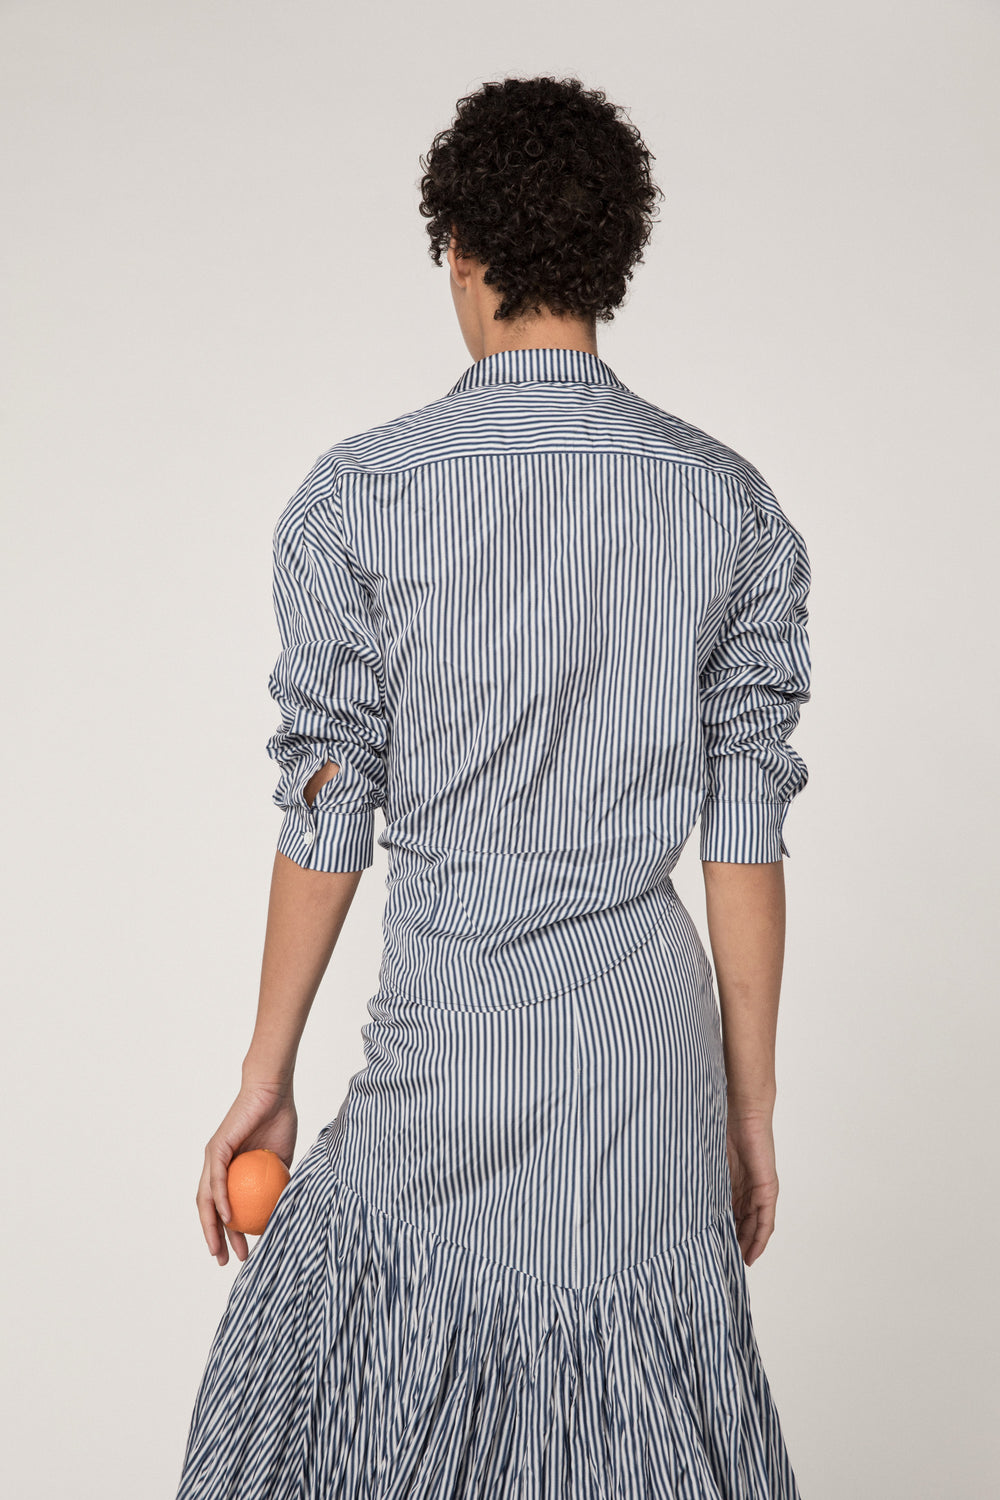 Rosie Assoulin Pre-Fall 2019 Reversible Classic Tie Front Shirt. Reversible button down. Relaxed fit. Adjustable ties. Navy stripe. 100% Polyester. XS - L.